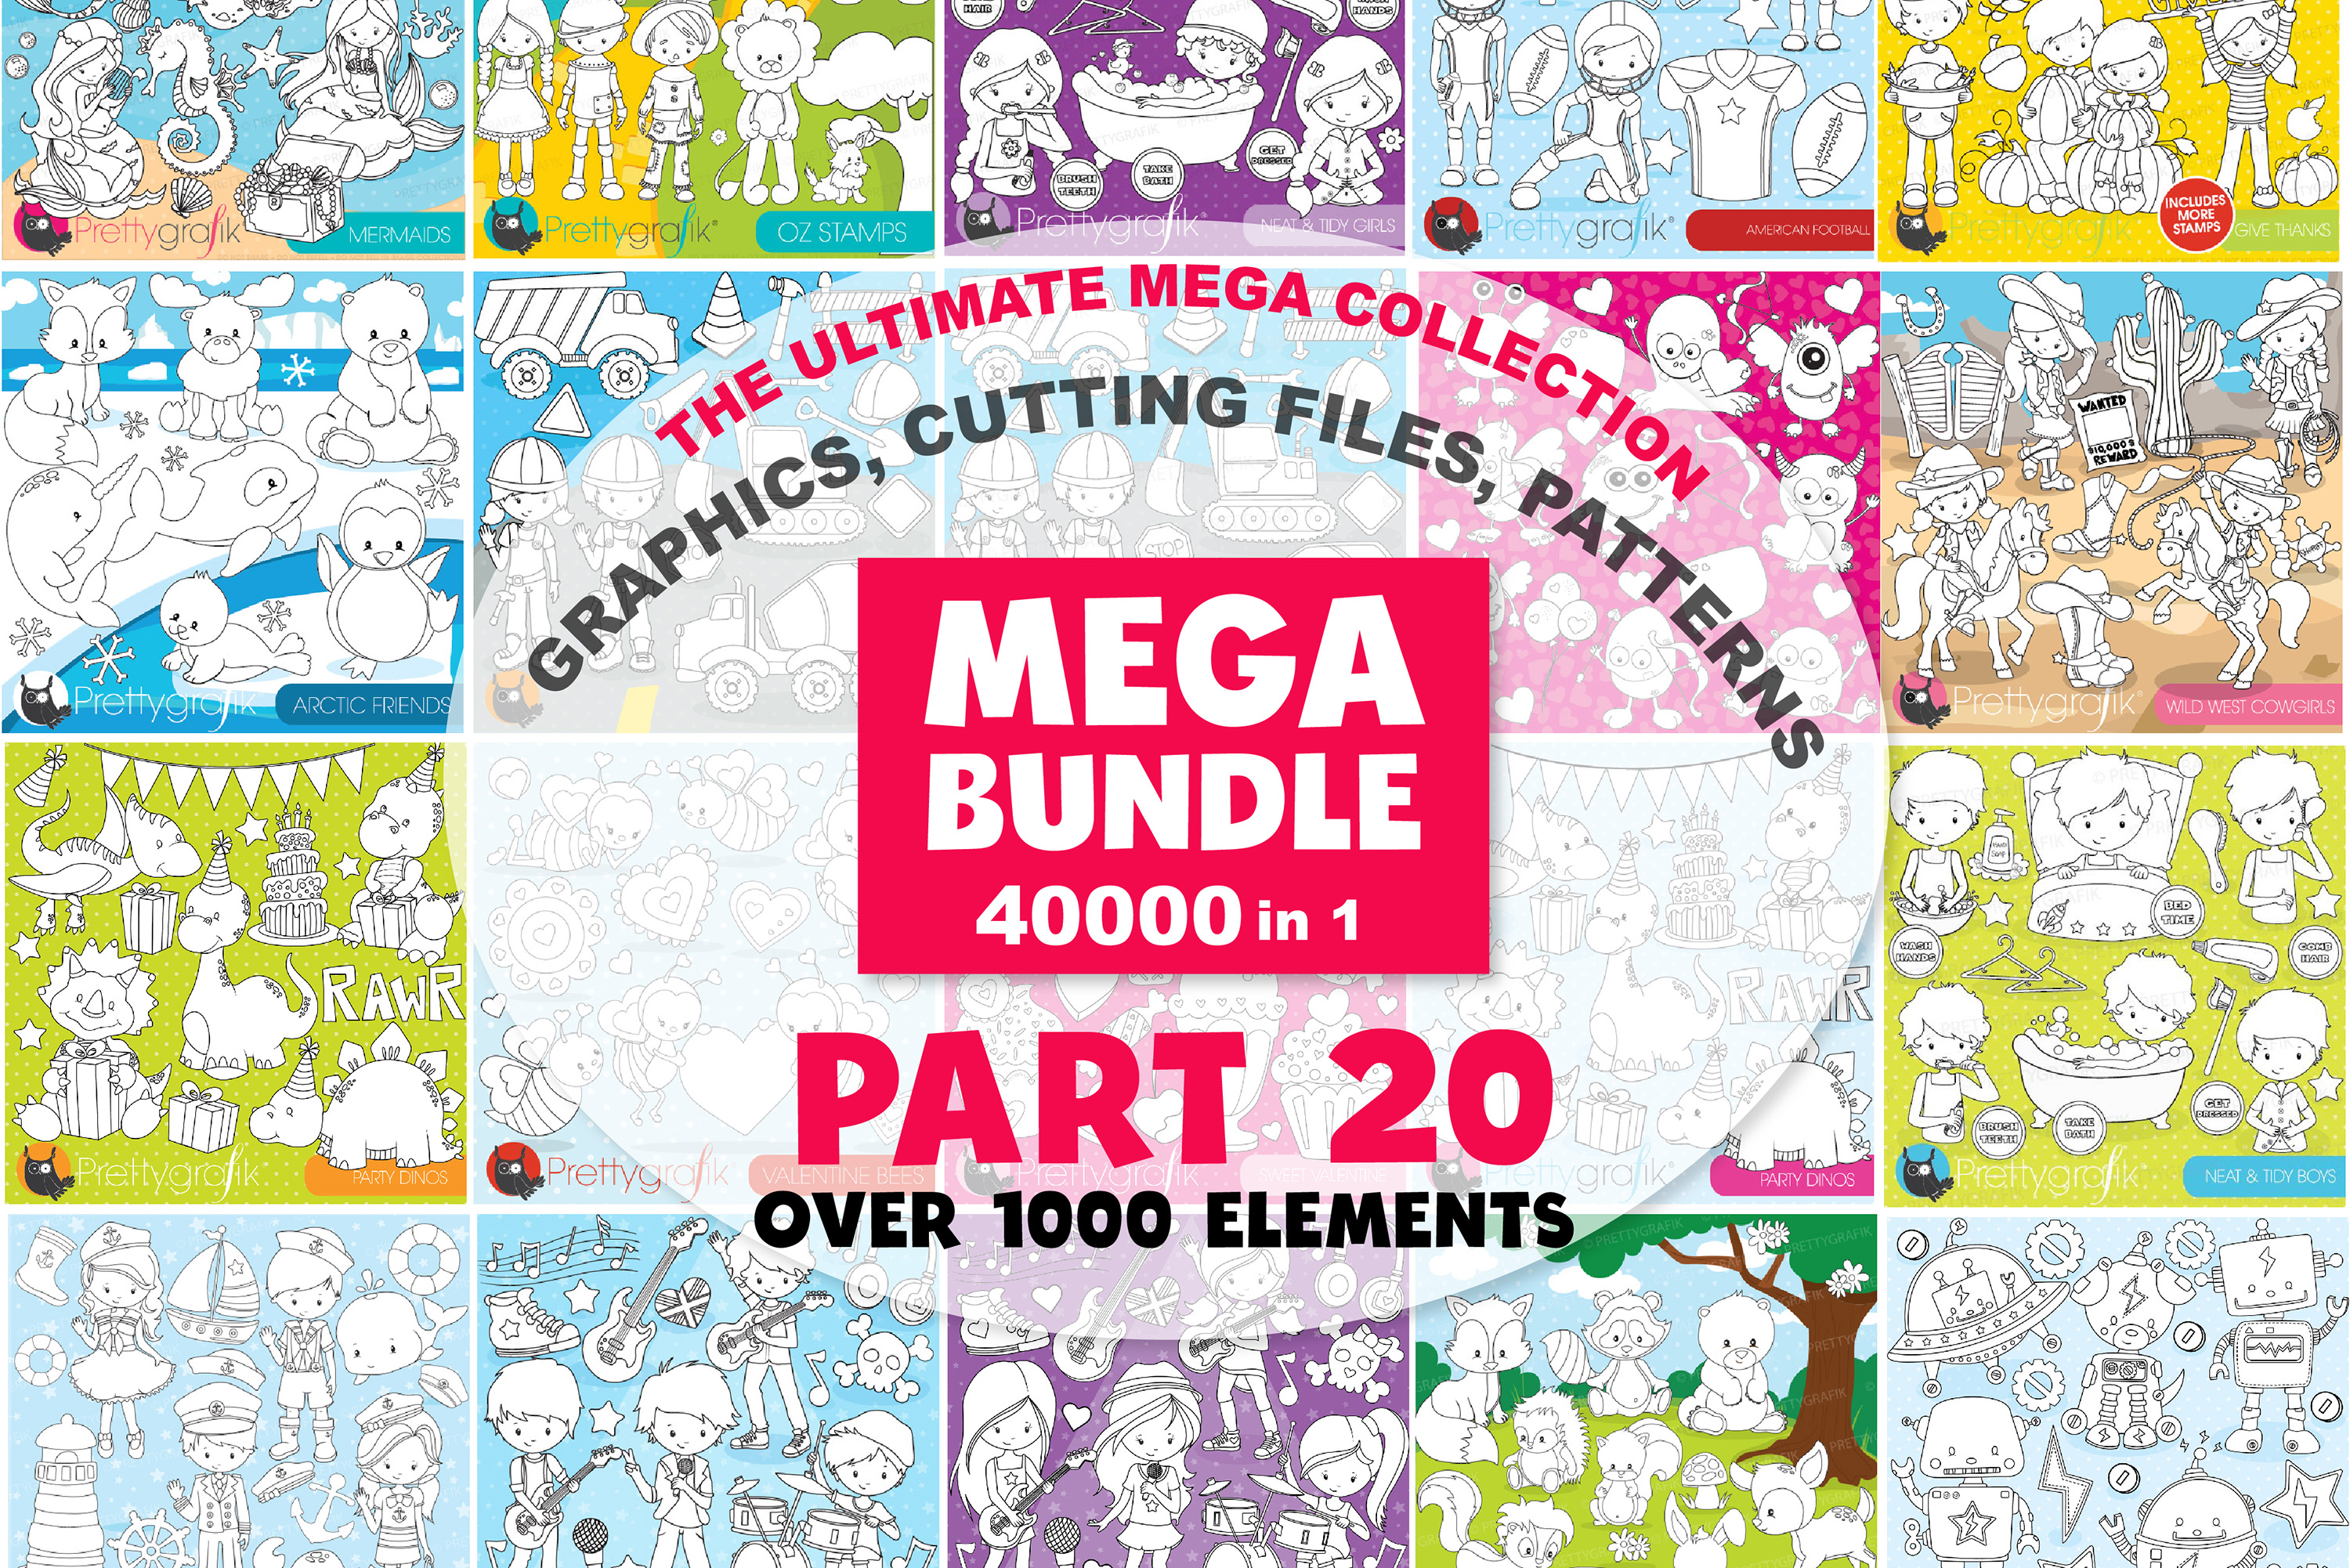 MEGA BUNDLE PART20 - 40000 in 1 Full Collection example image 1